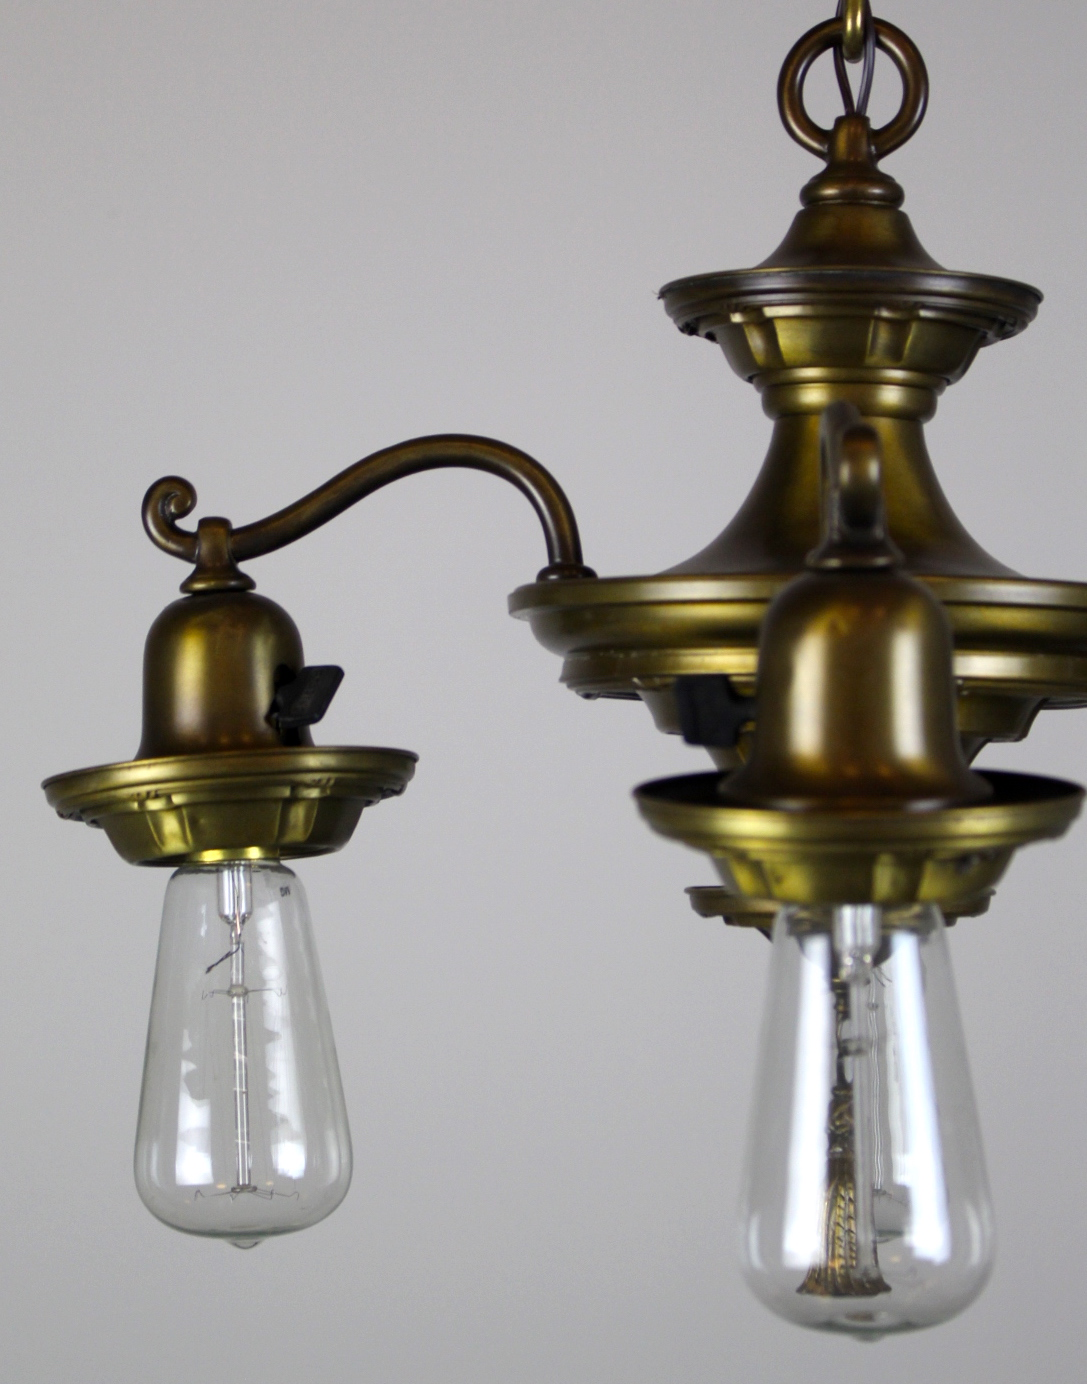 Tag Sheffield See More Antique Ceiling Lights Lighting Latest Antiques